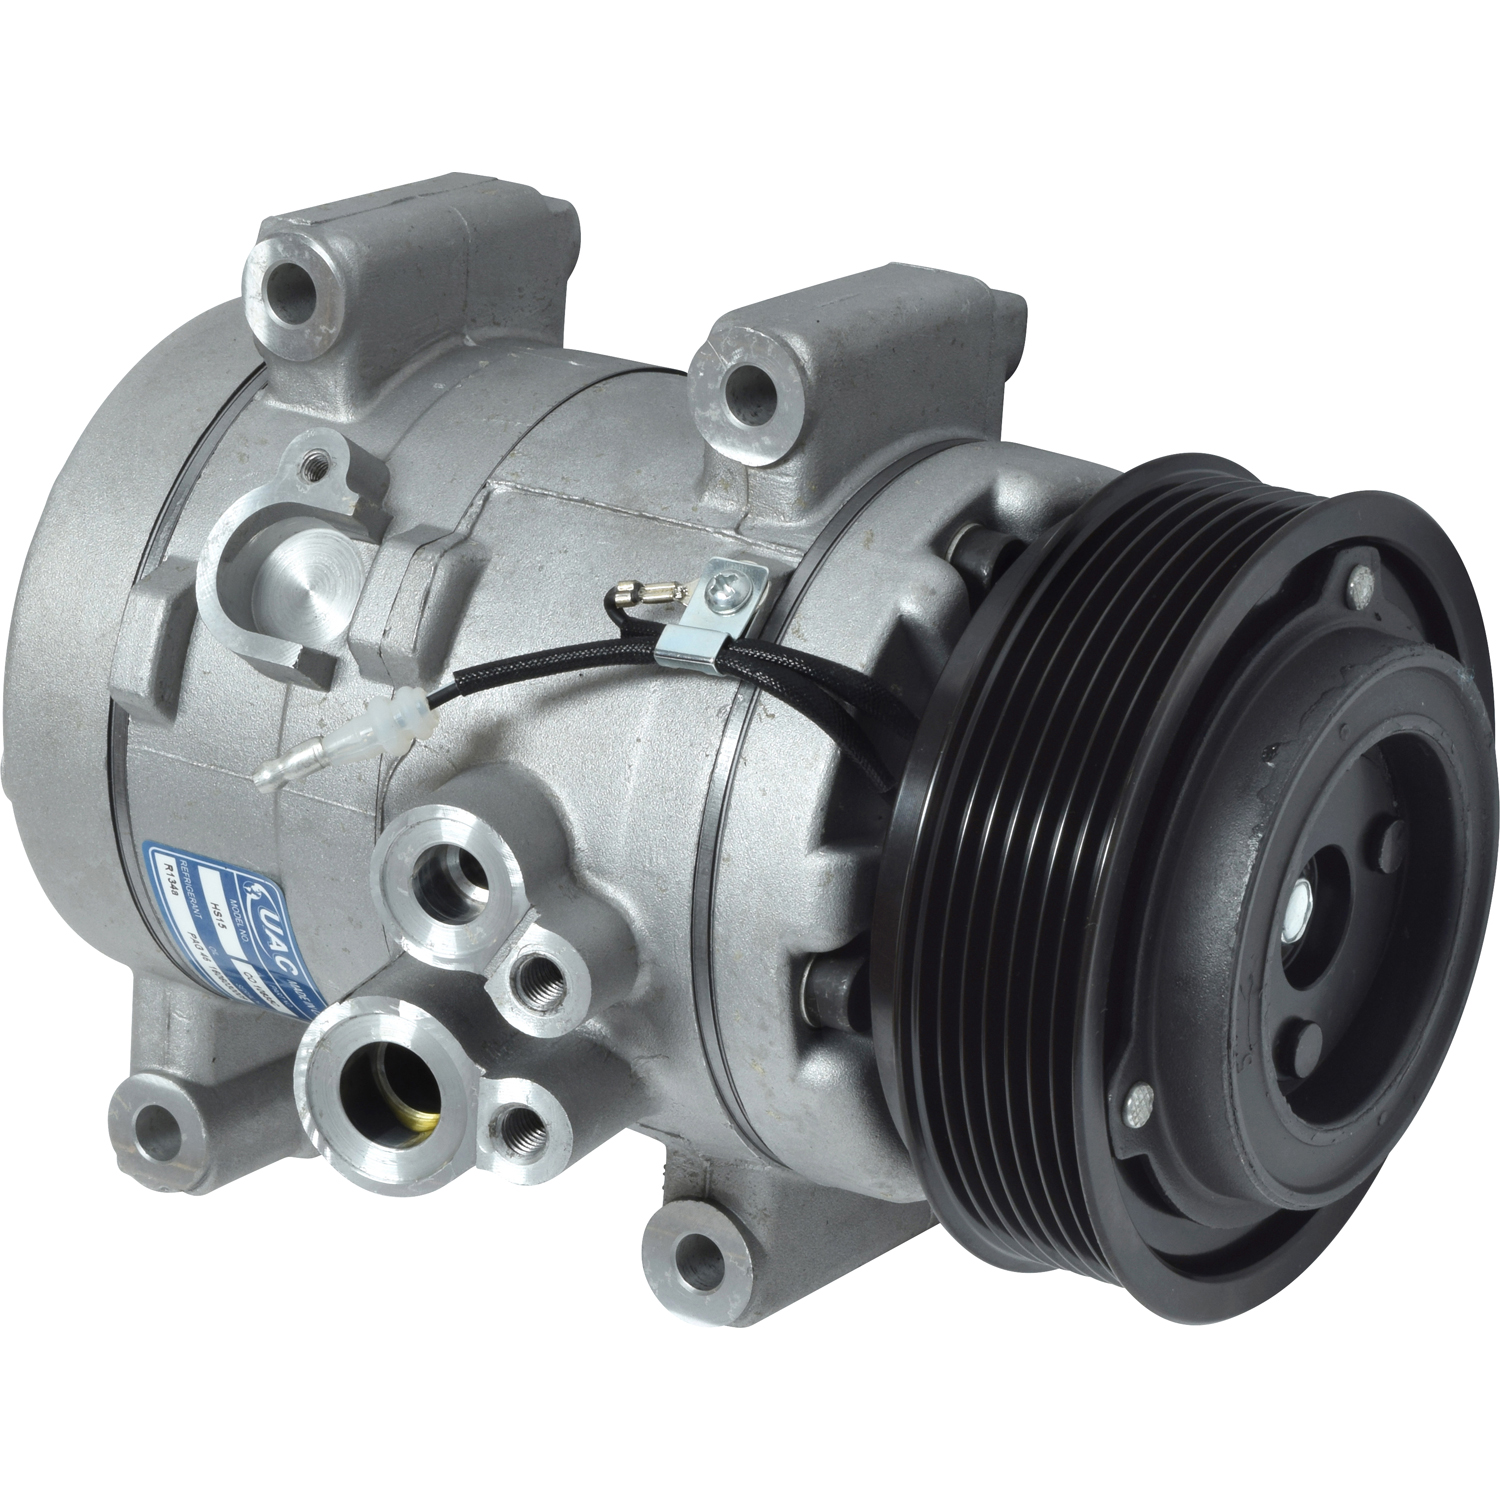 CO 10835C SP15 Compressor Assembly